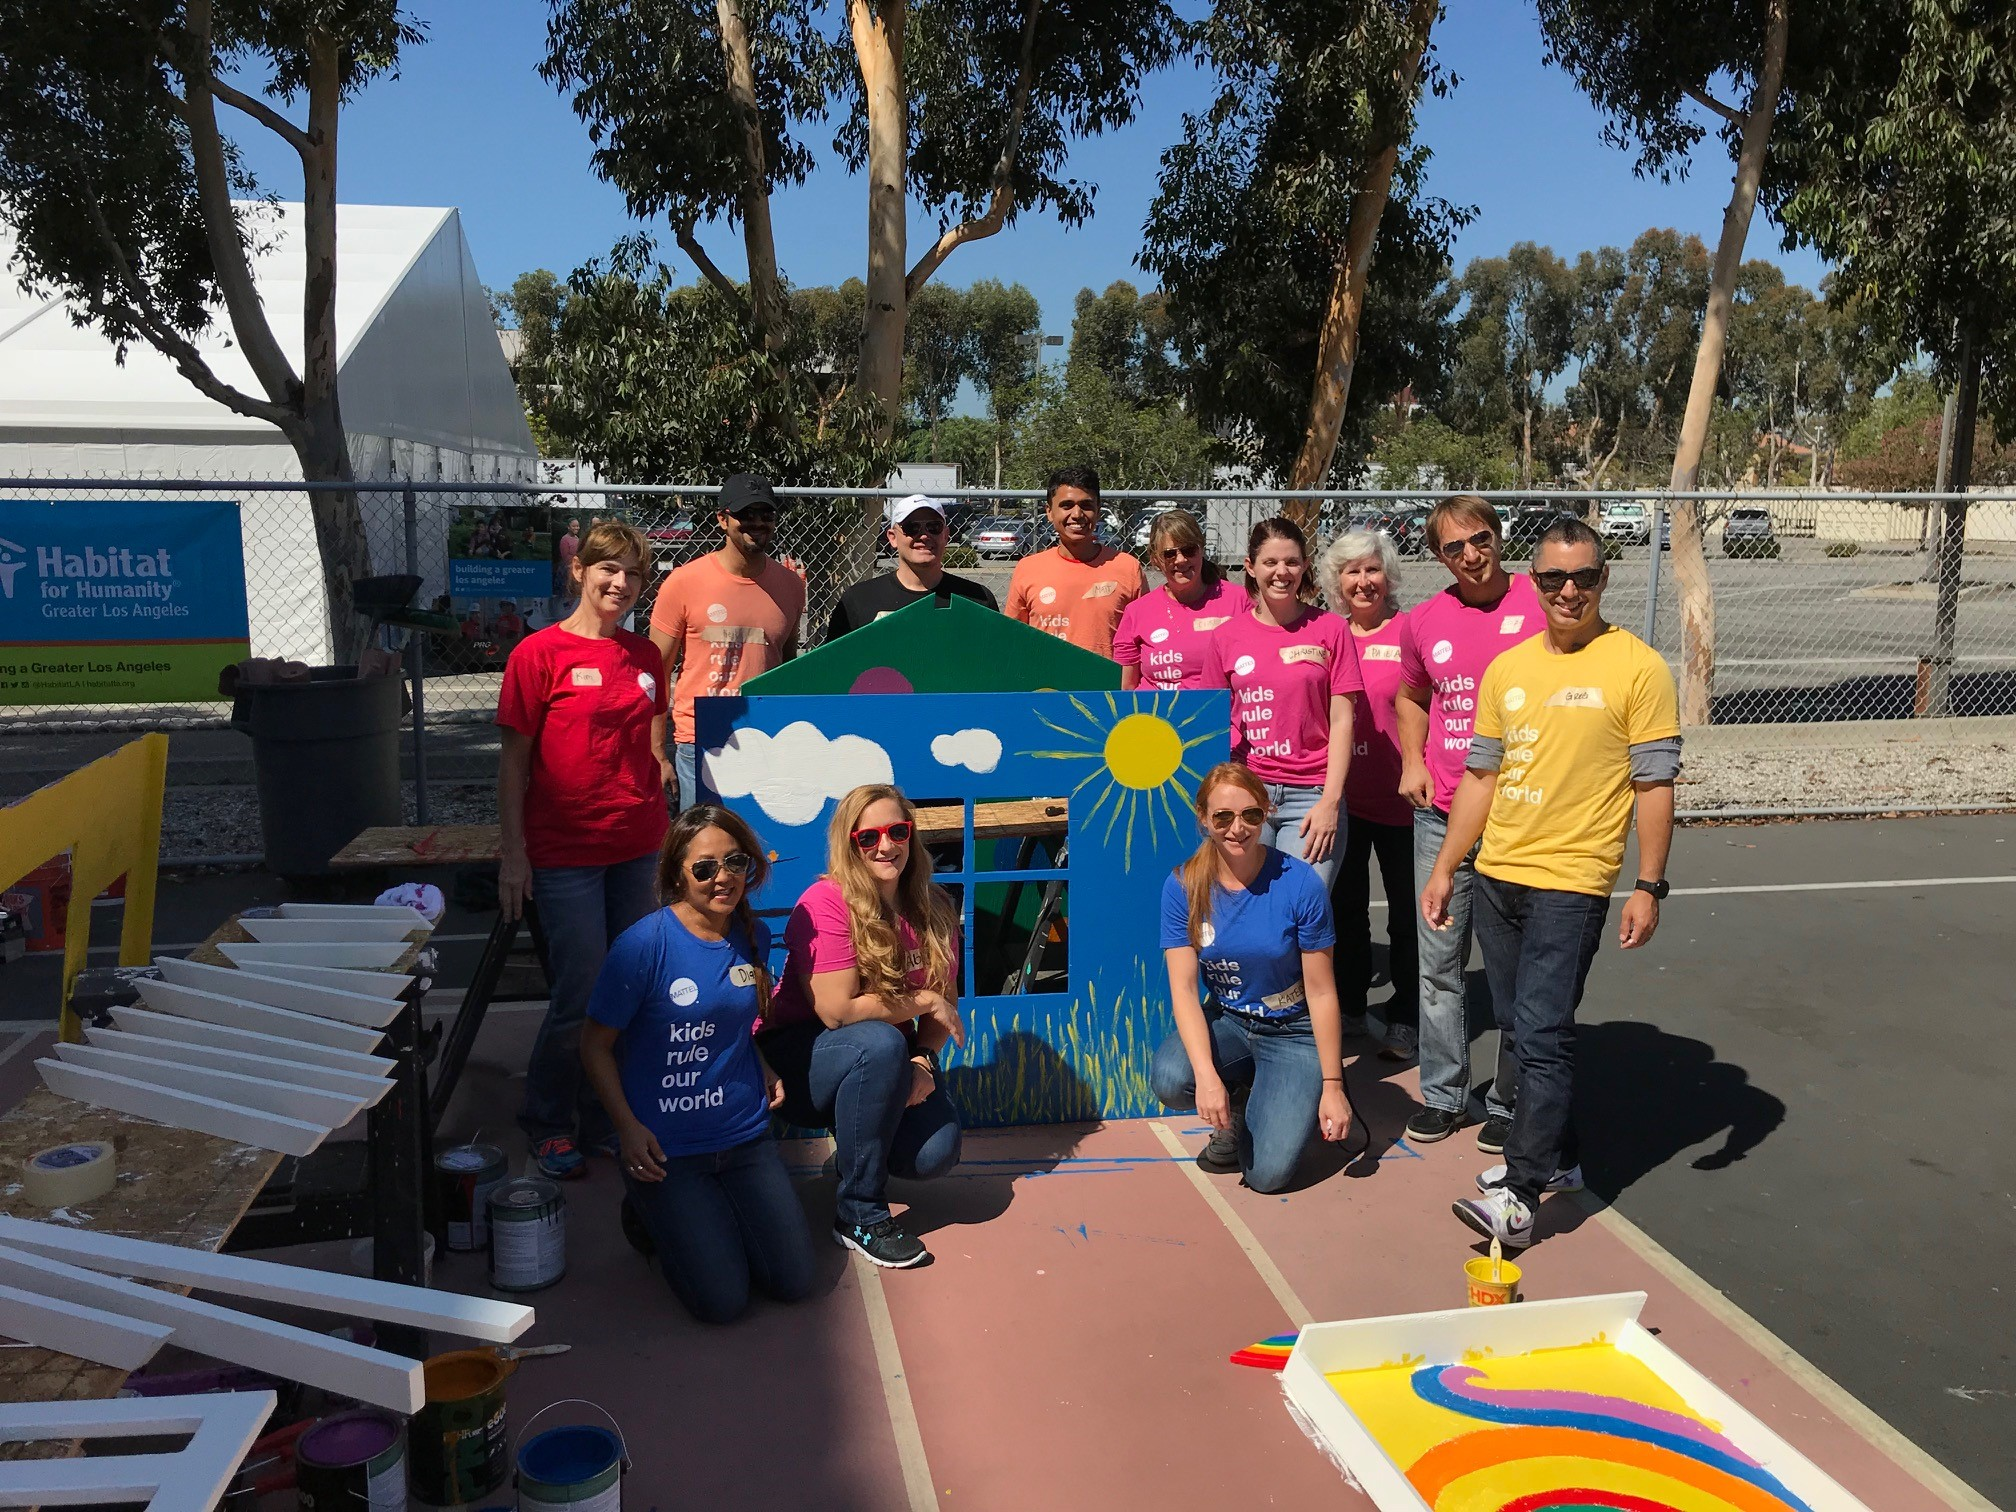 Mattel volunteers standing in front of their playhouse they painted for a group photo.